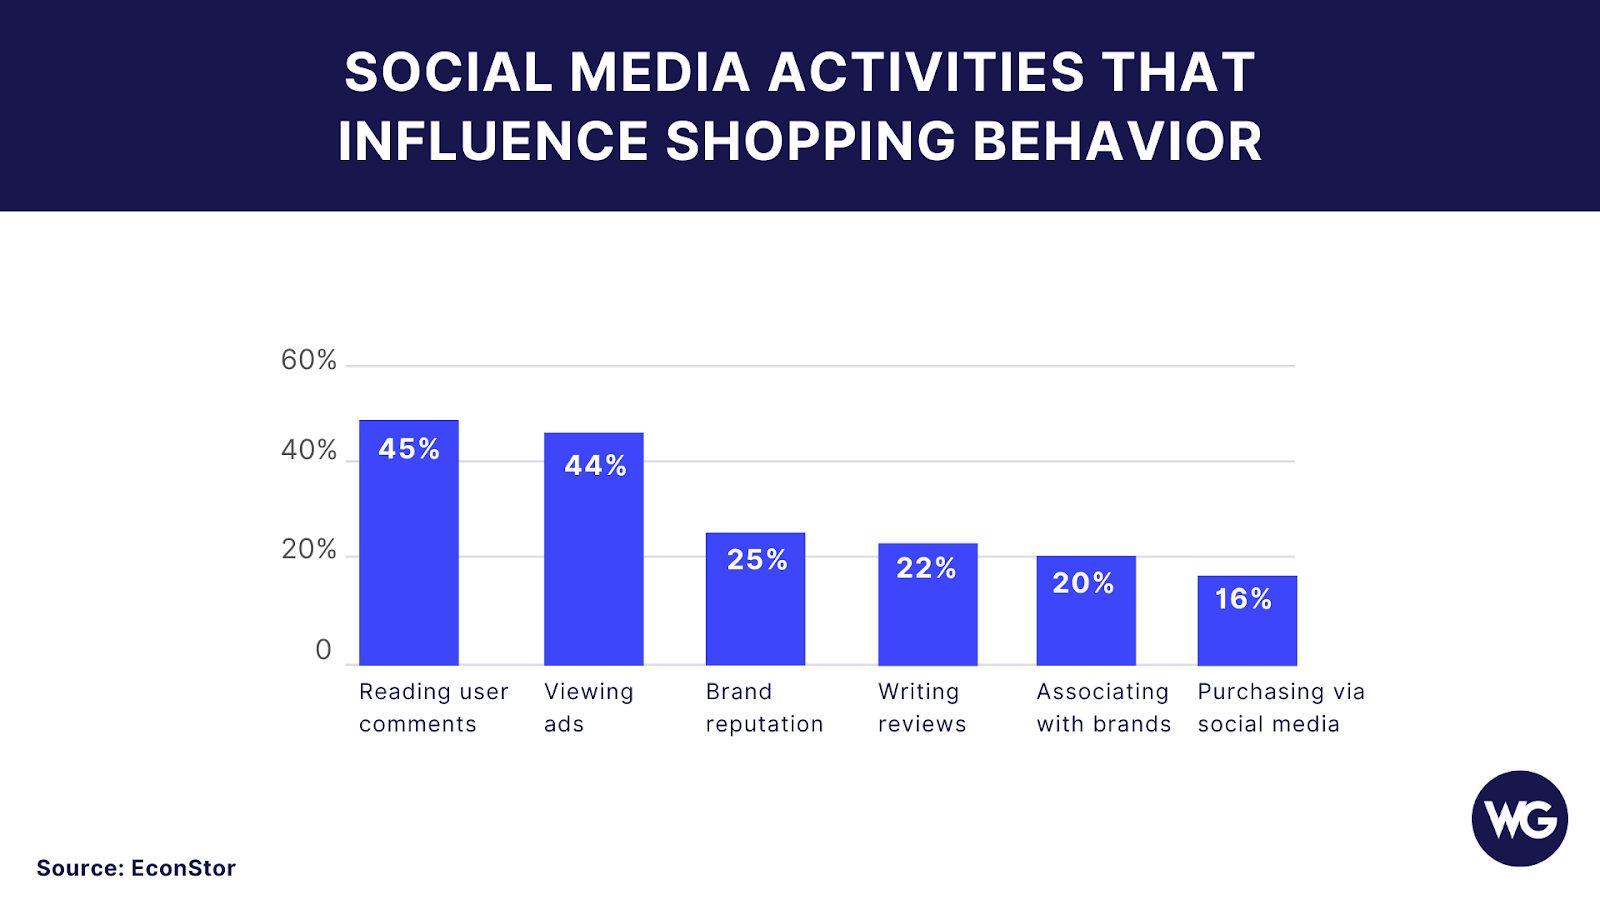 Graphic of social media activities that influence shopping behavior